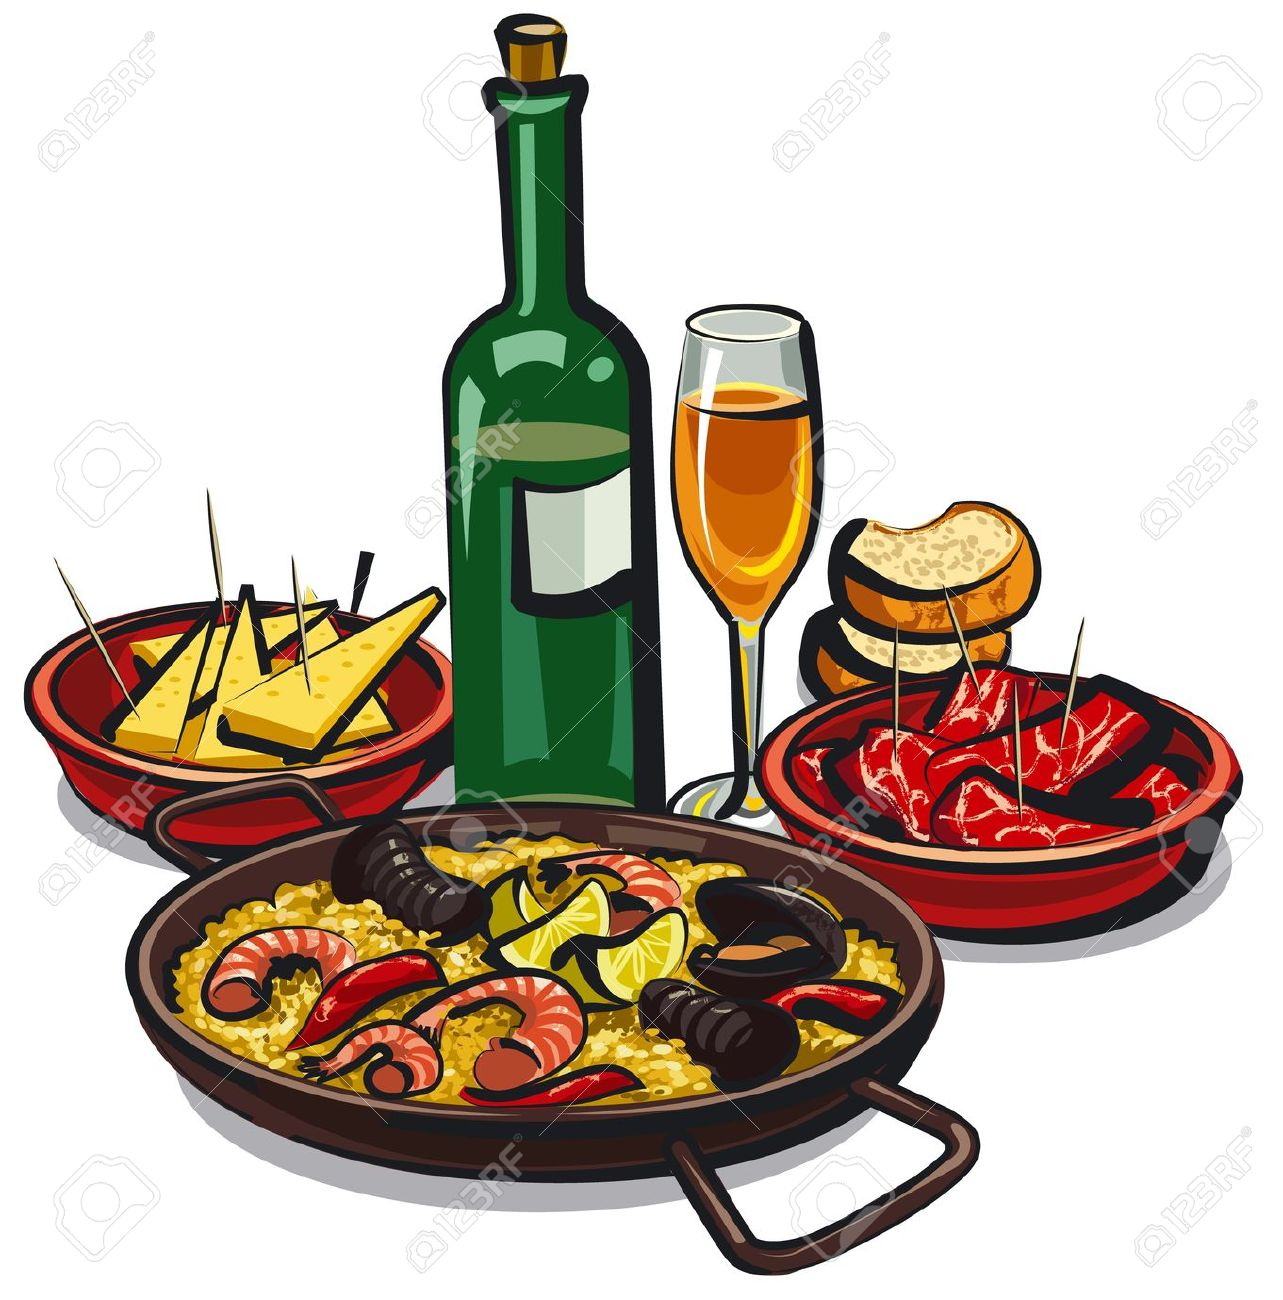 Spanish clipart spanish food Spanish Food Spanish Food Clipart